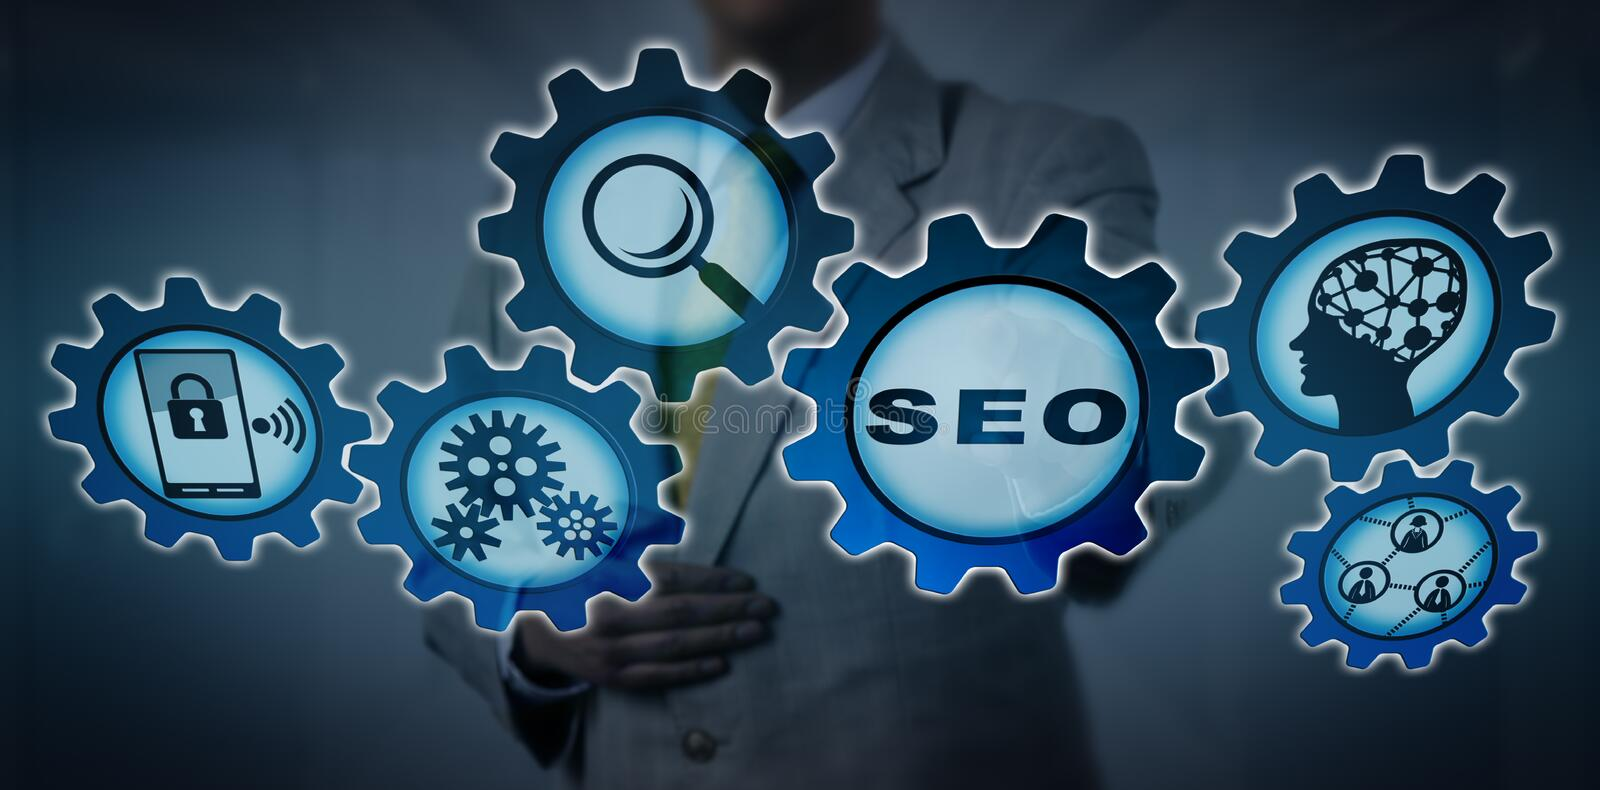 O gerente de TI Offering AI ajudou a SEO Solution